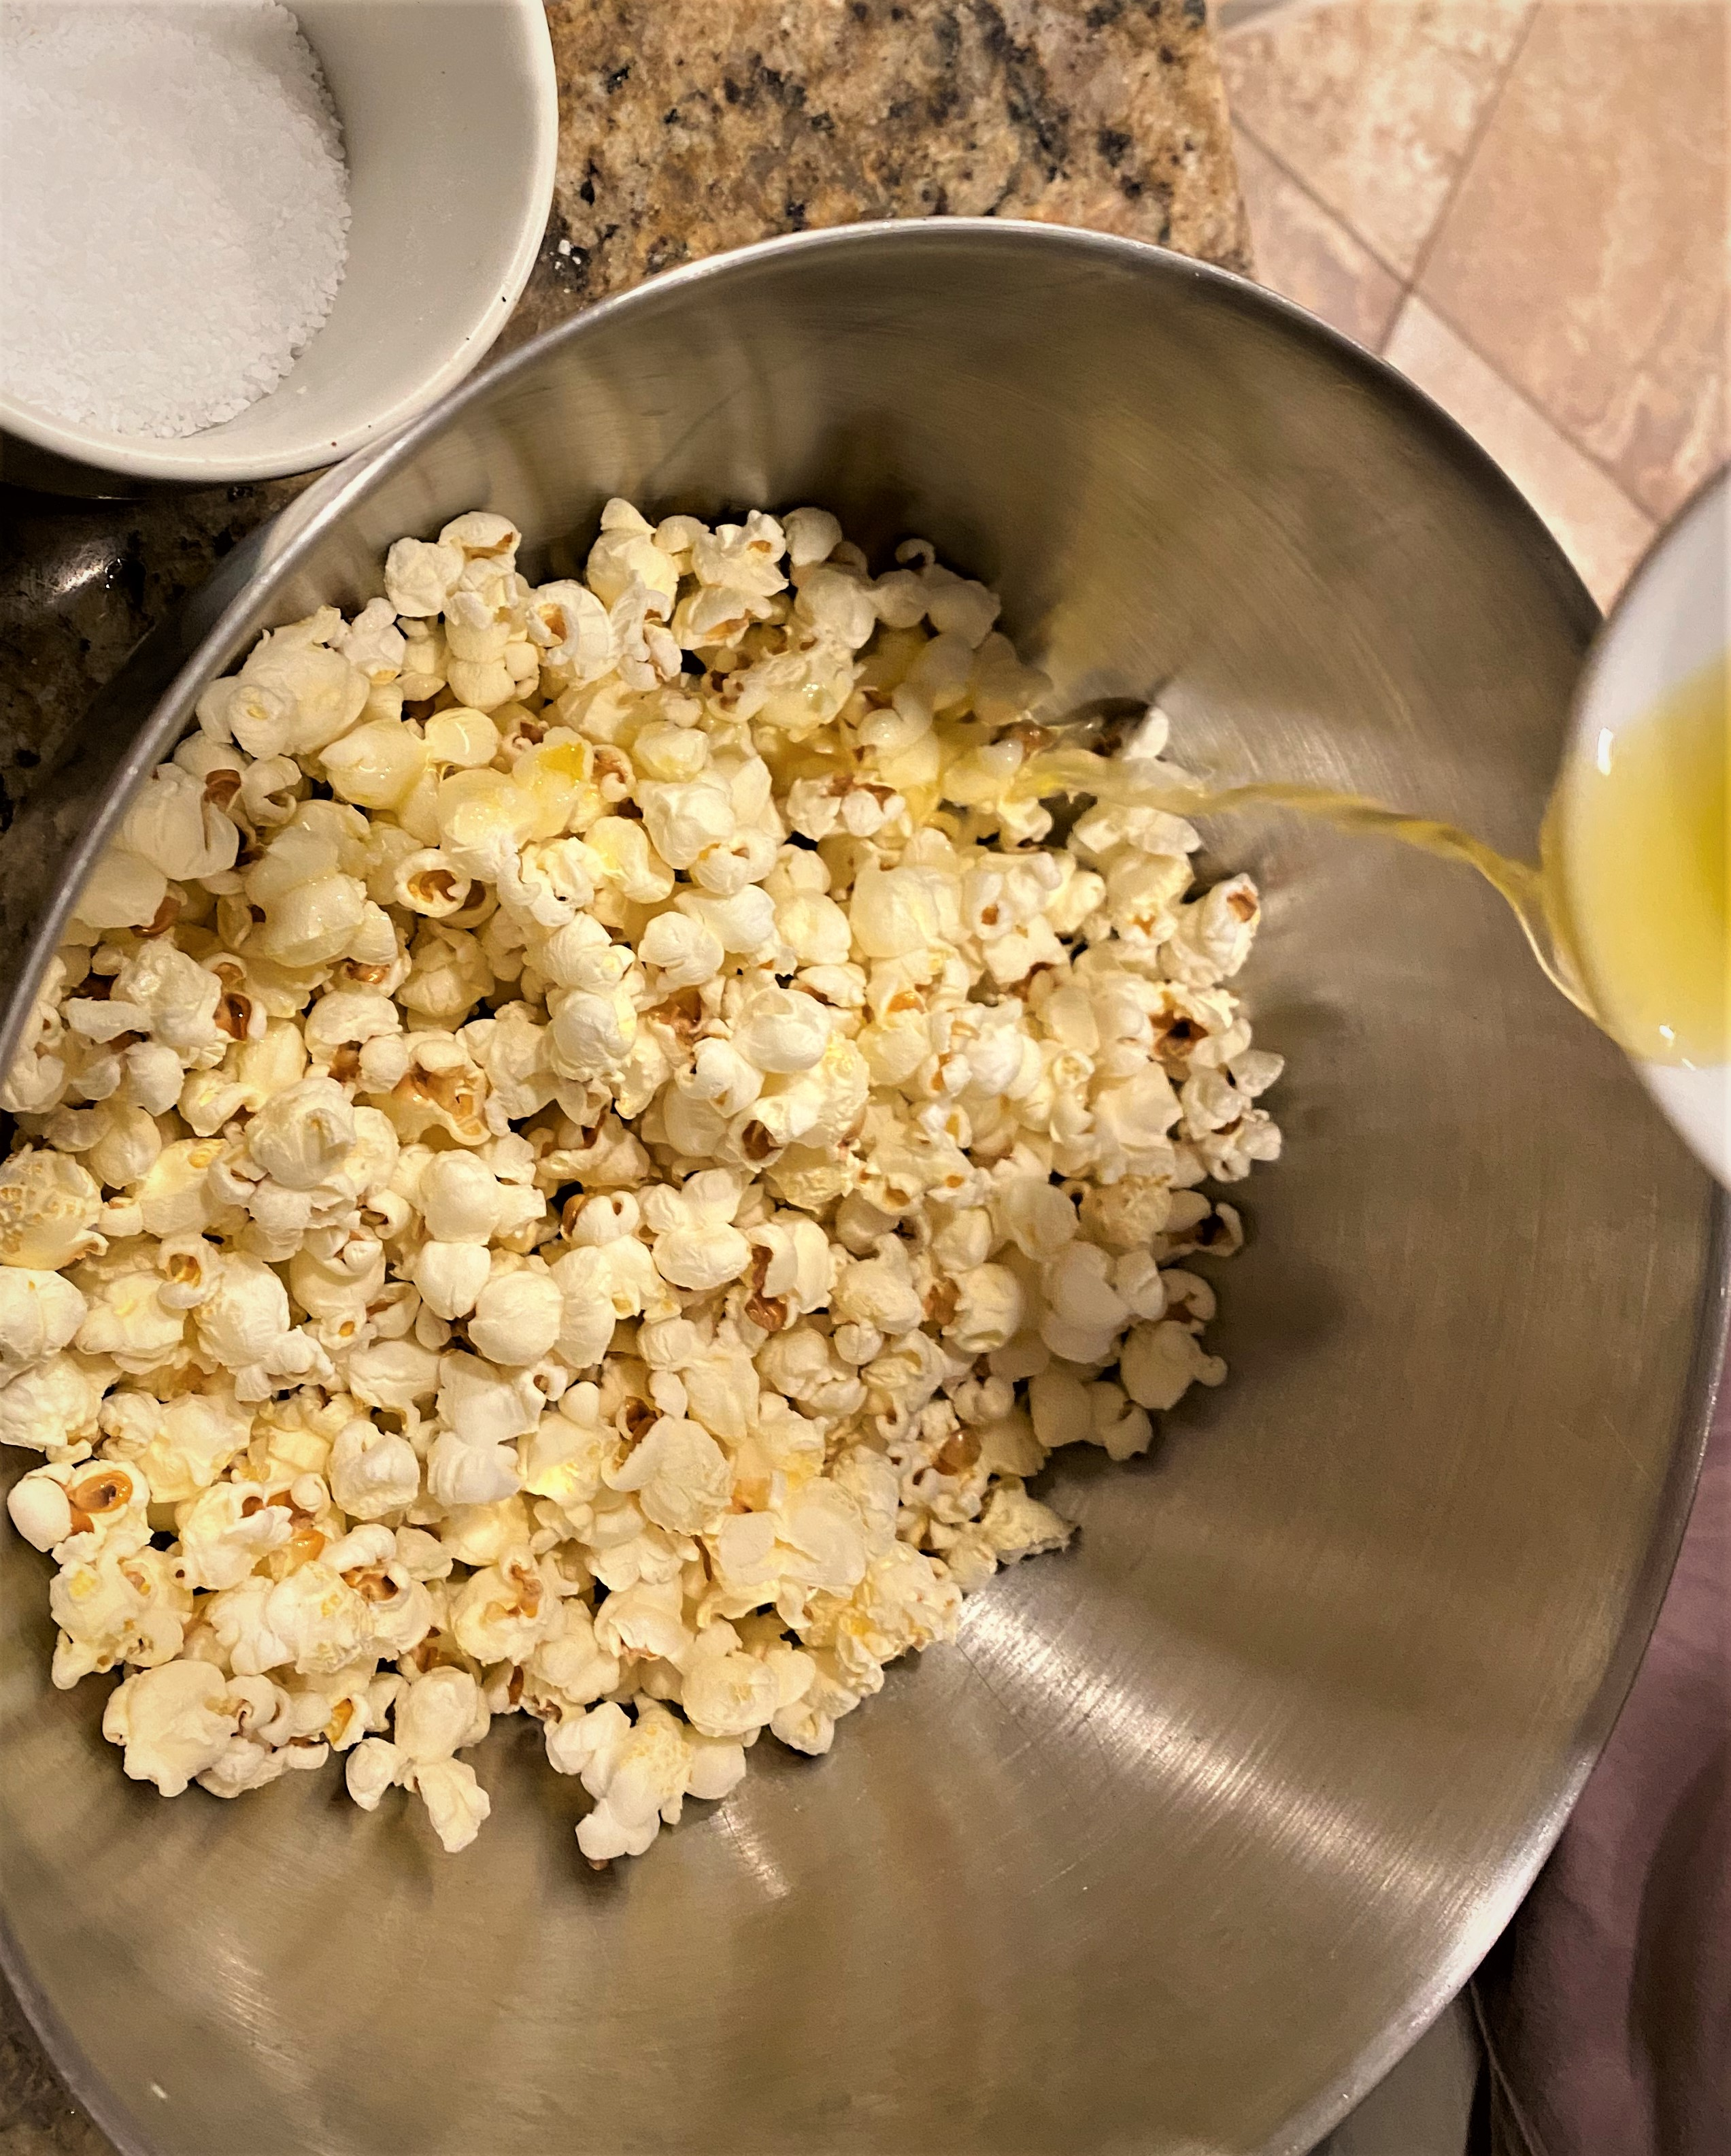 A bowl about 1/3 full of popcorn with butter being poured on top.